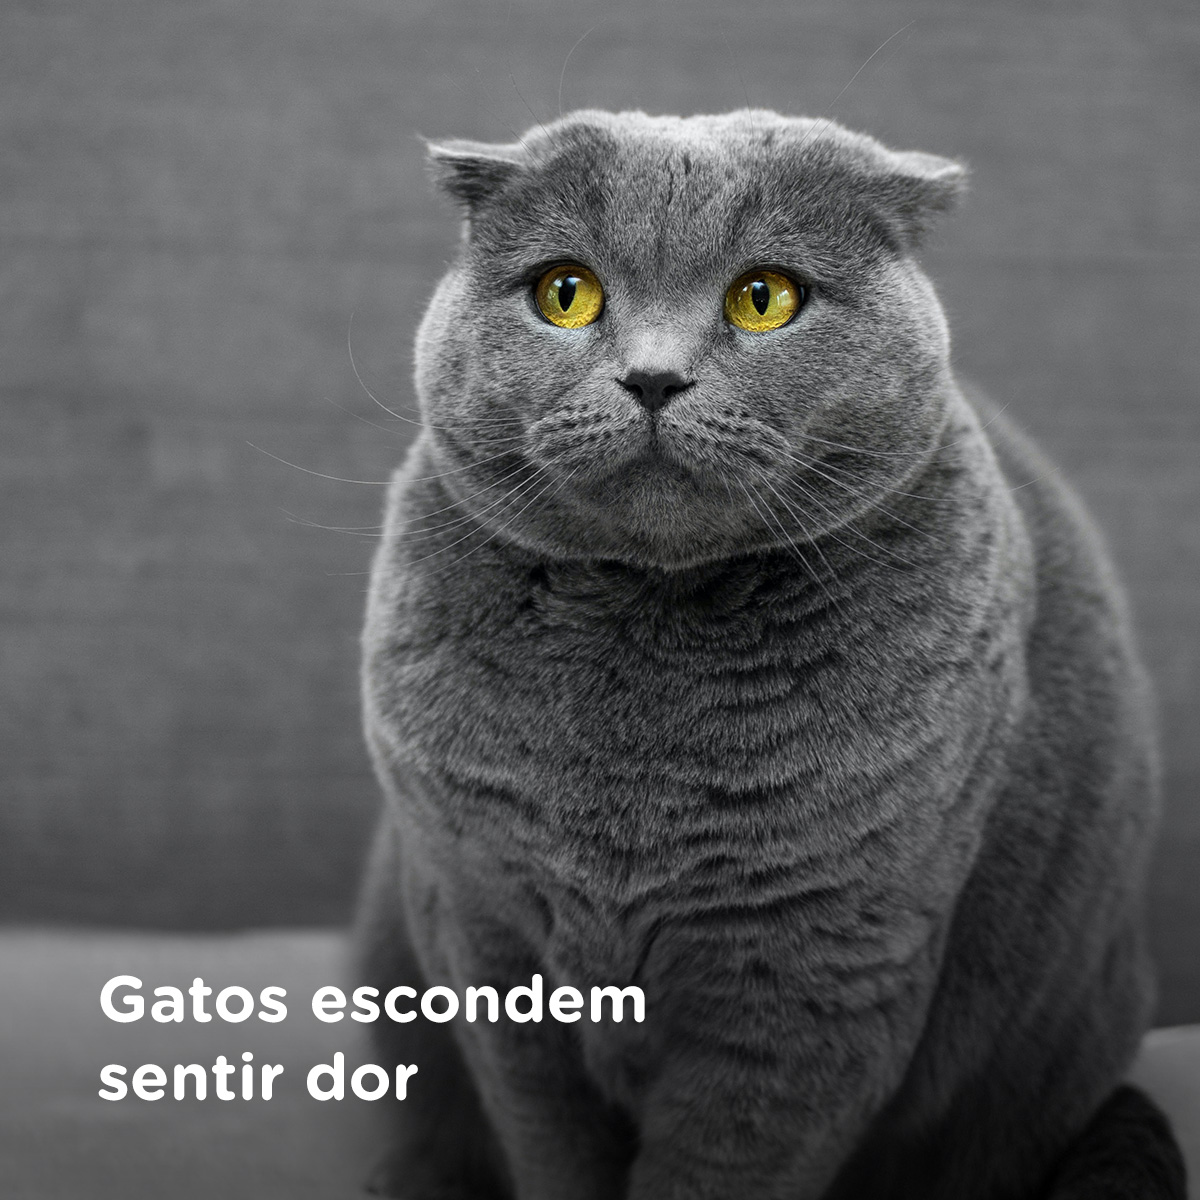 Gatos escondem sentir dor